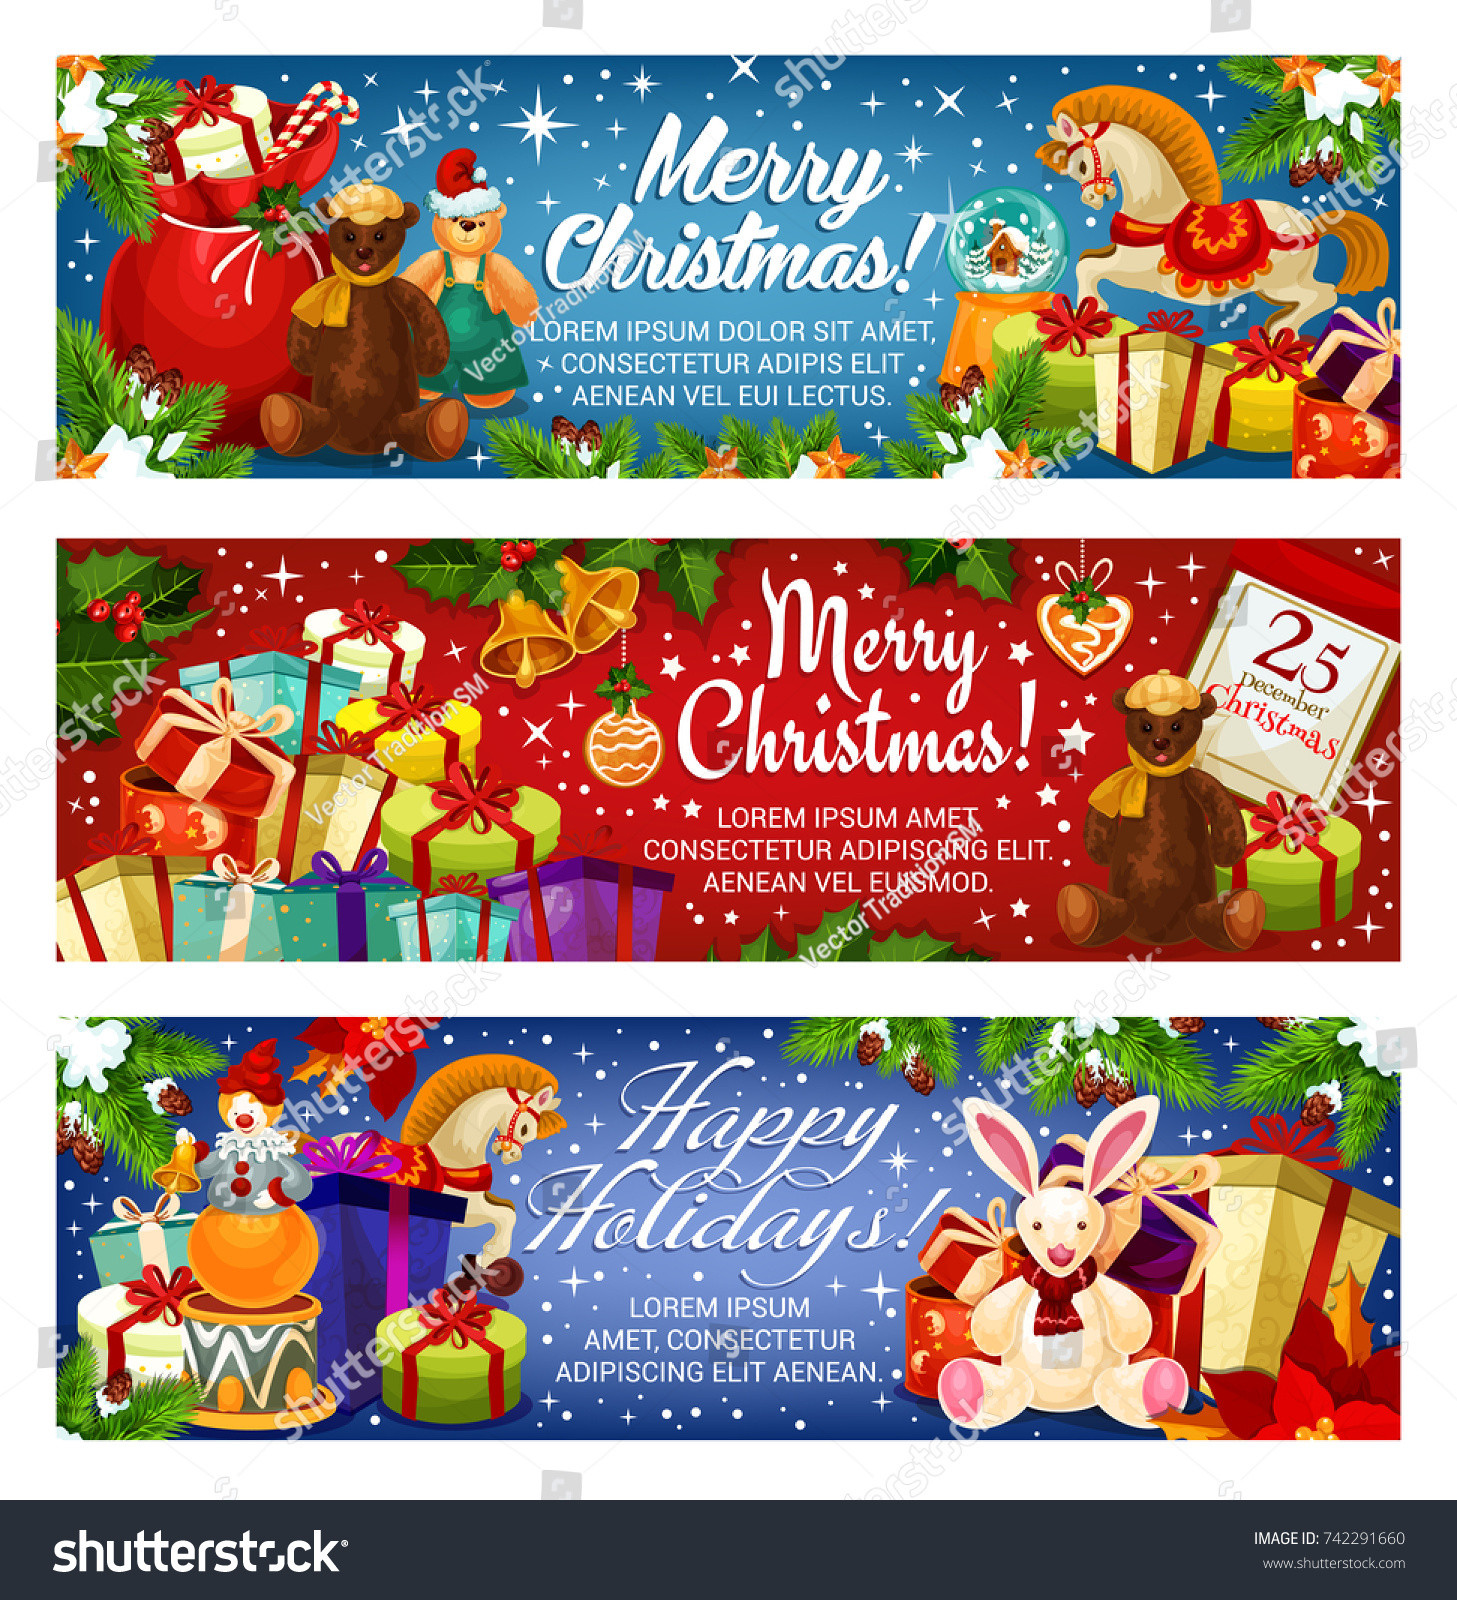 4f770ae017 1457x1600 Ugly Sweater Party Invitation Poem New Merry Christmas Banners